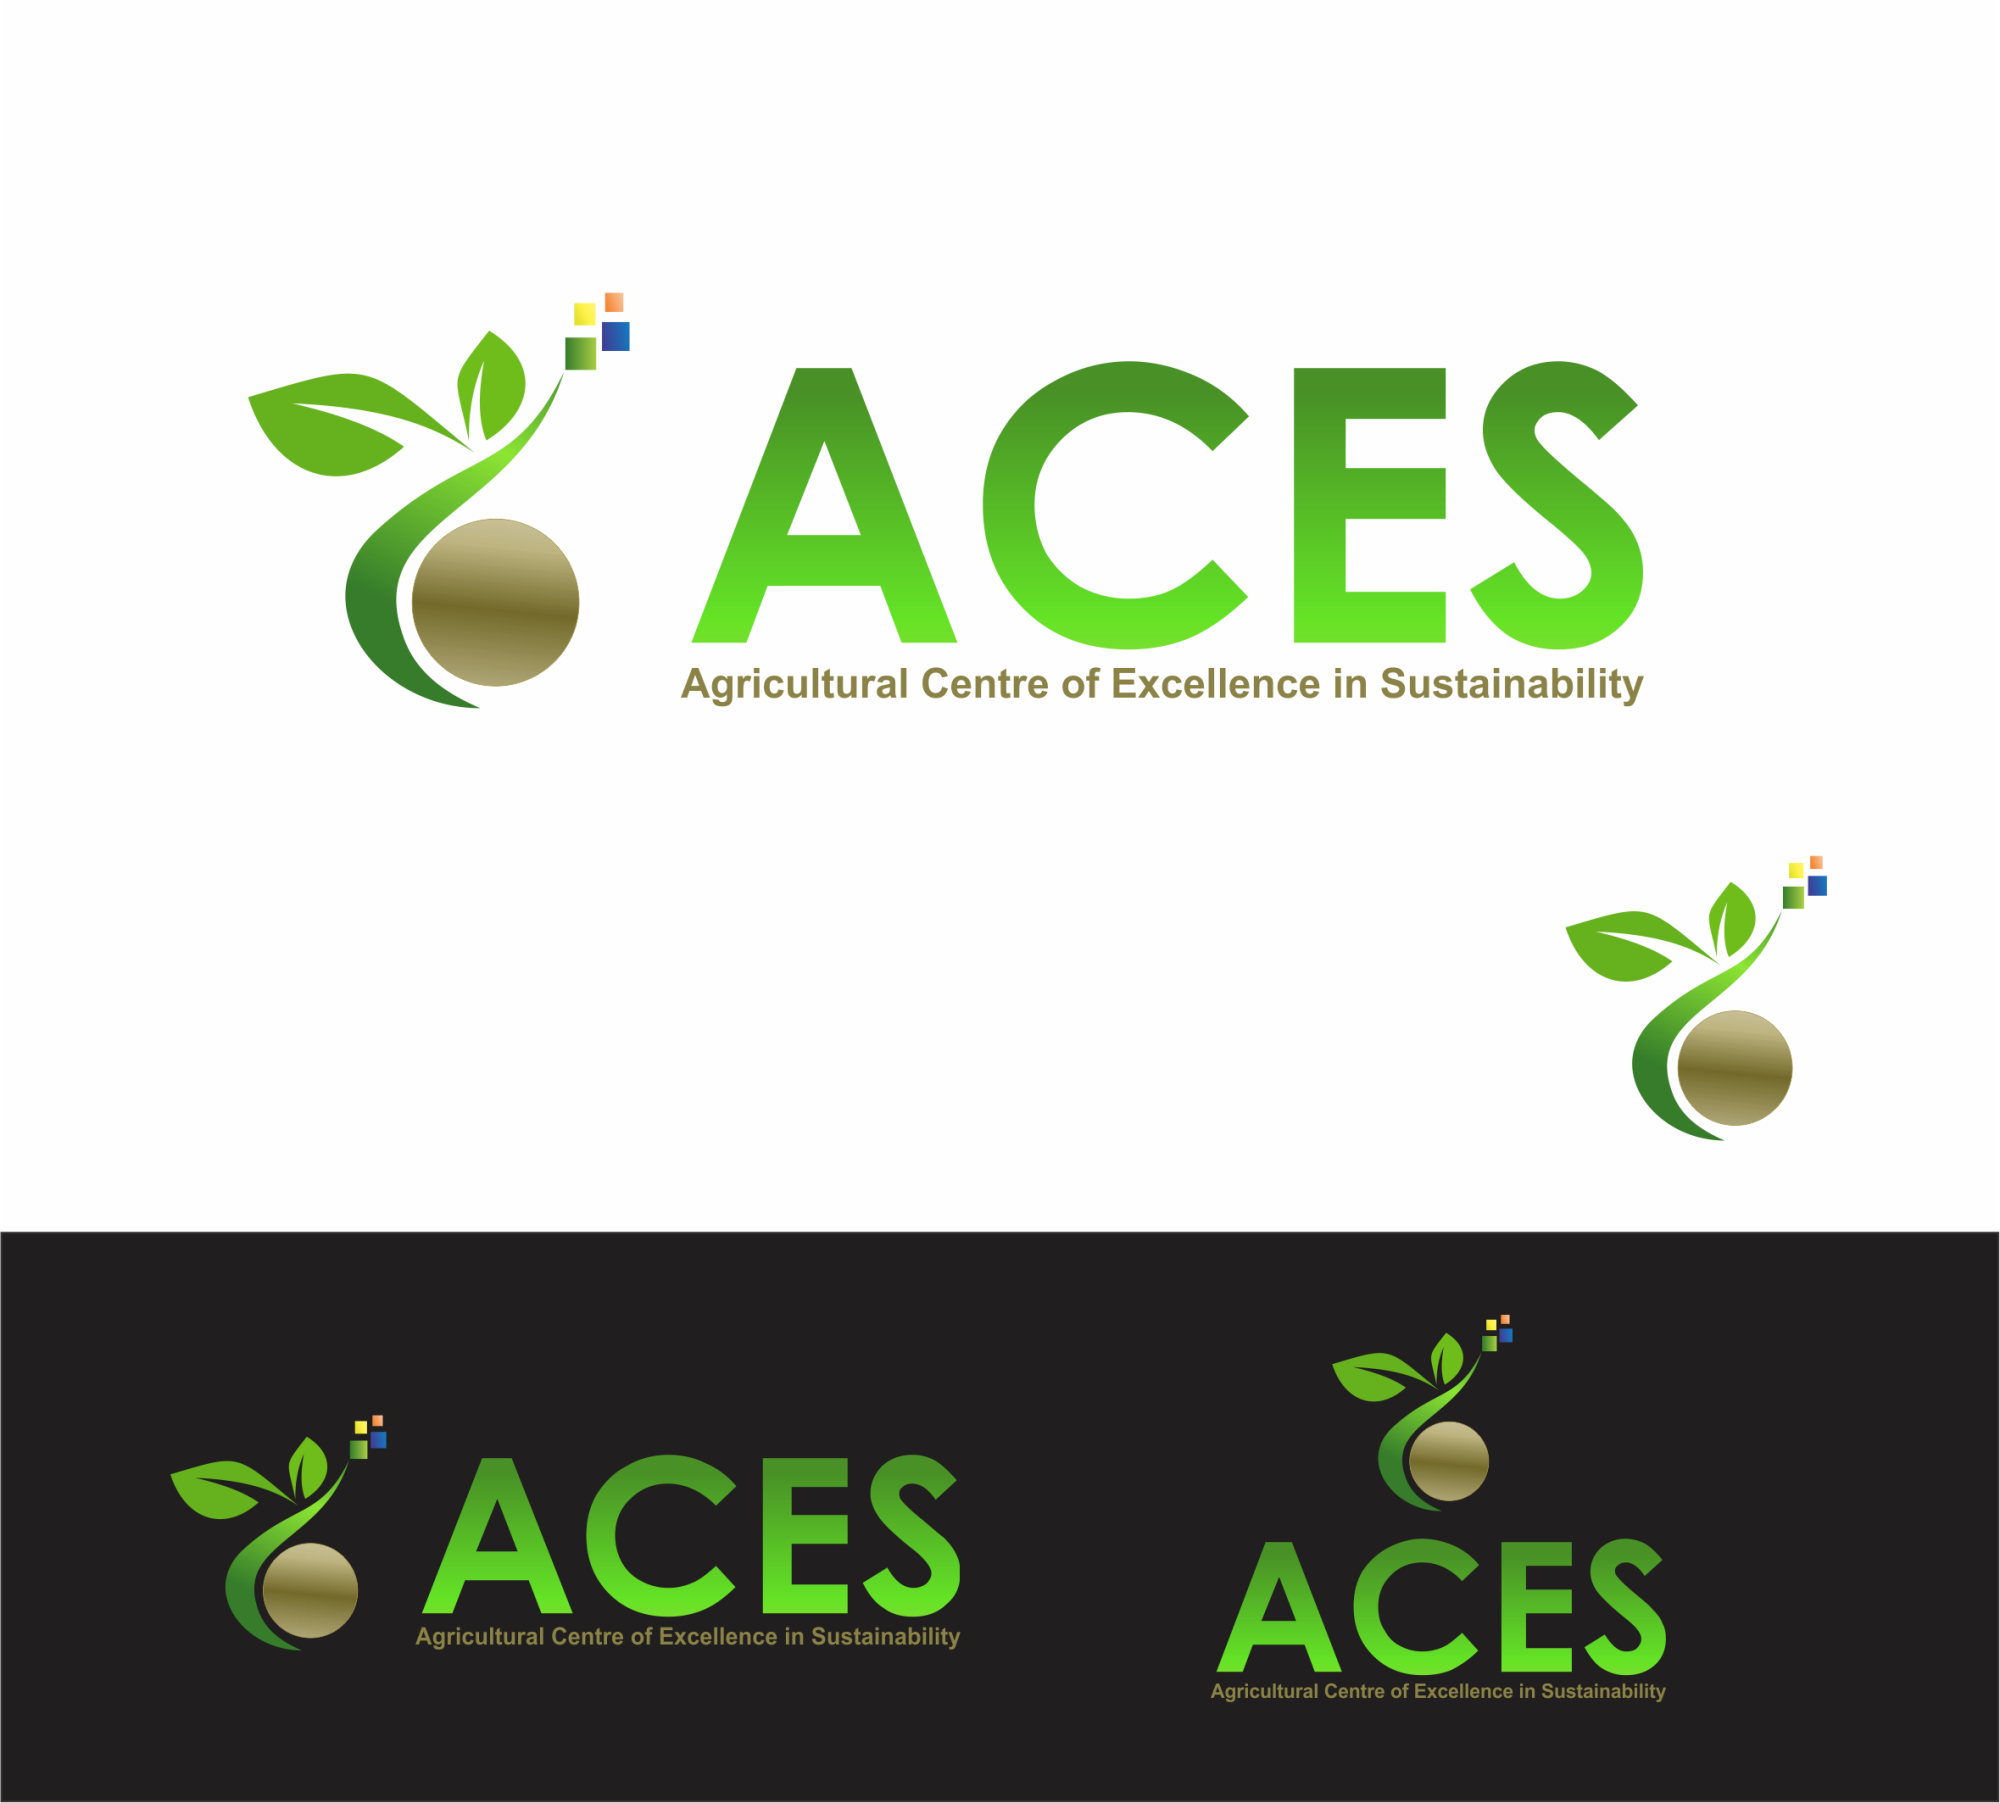 Agri cultures project logo duckdog design - Create The Next Logo For Aces Agricultural Centre Of Excellence In Sustainability Logo Design